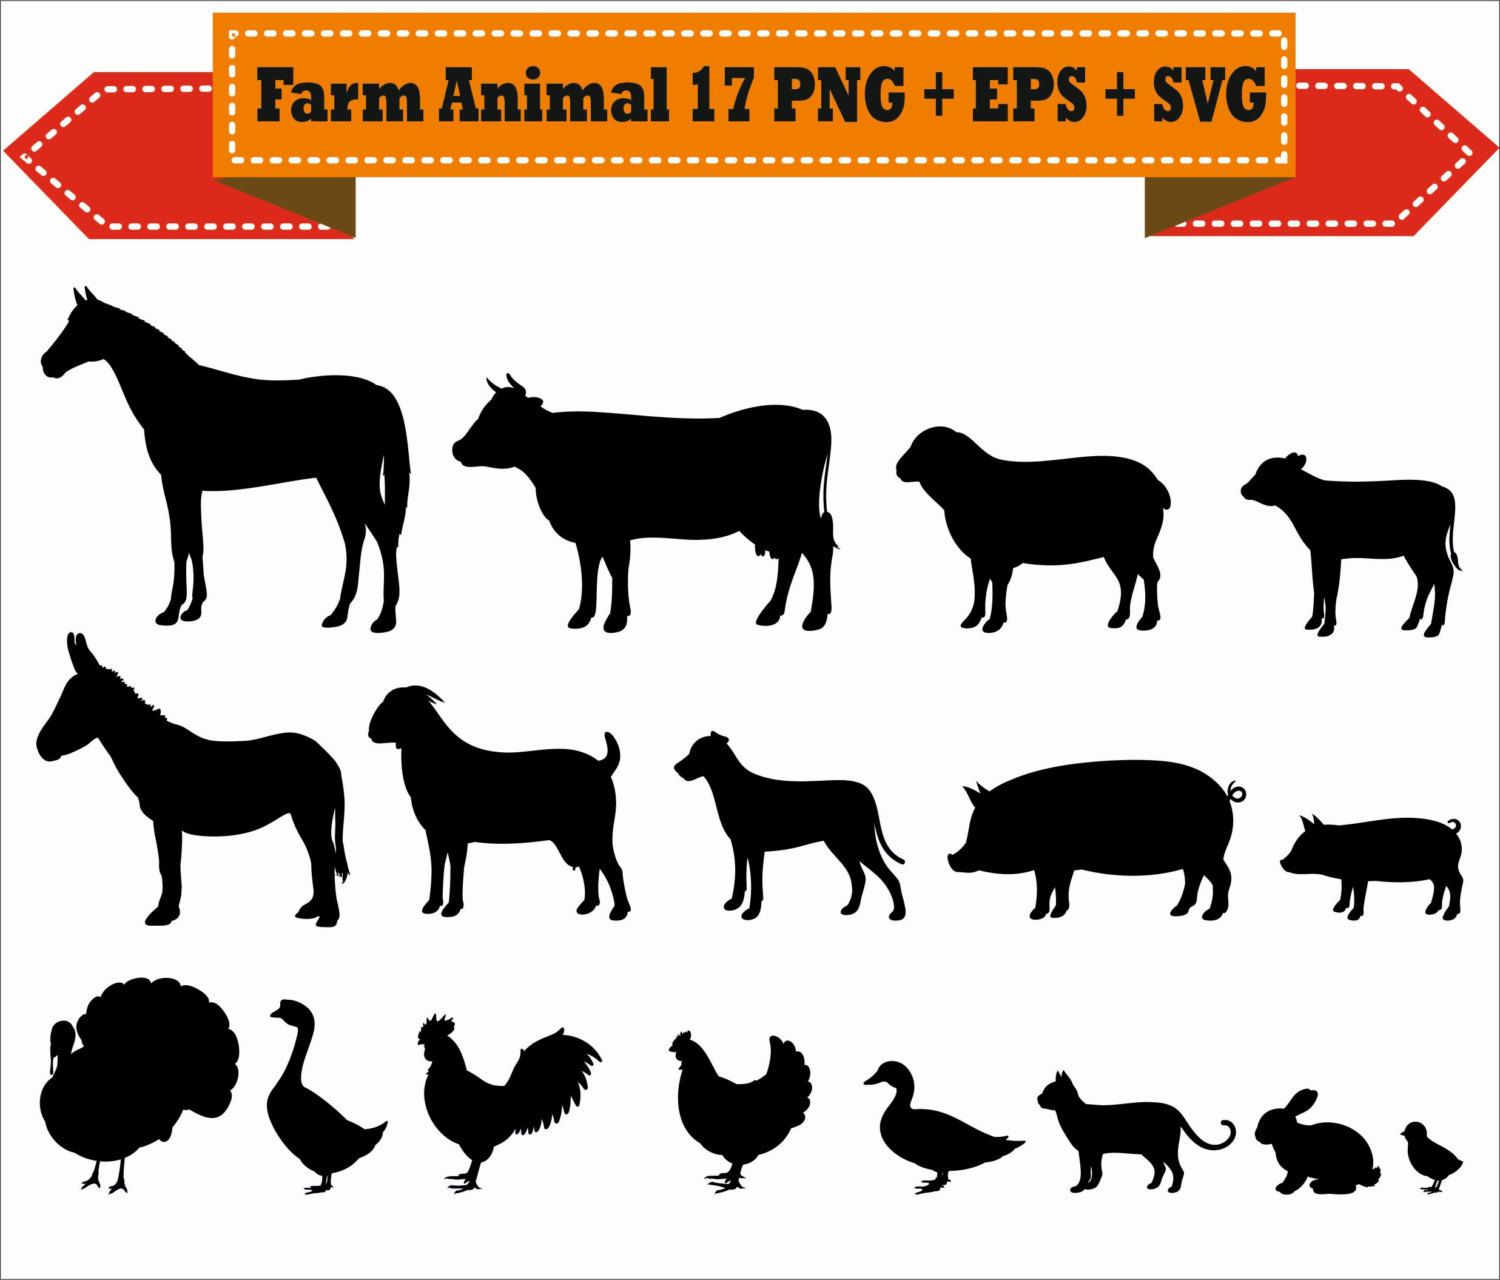 Farm Animal Chicken Duck Dog Cat Pig Horse Silhouette Vector Etsy In 2021 Horse Silhouette Pet Chickens Animal Silhouette